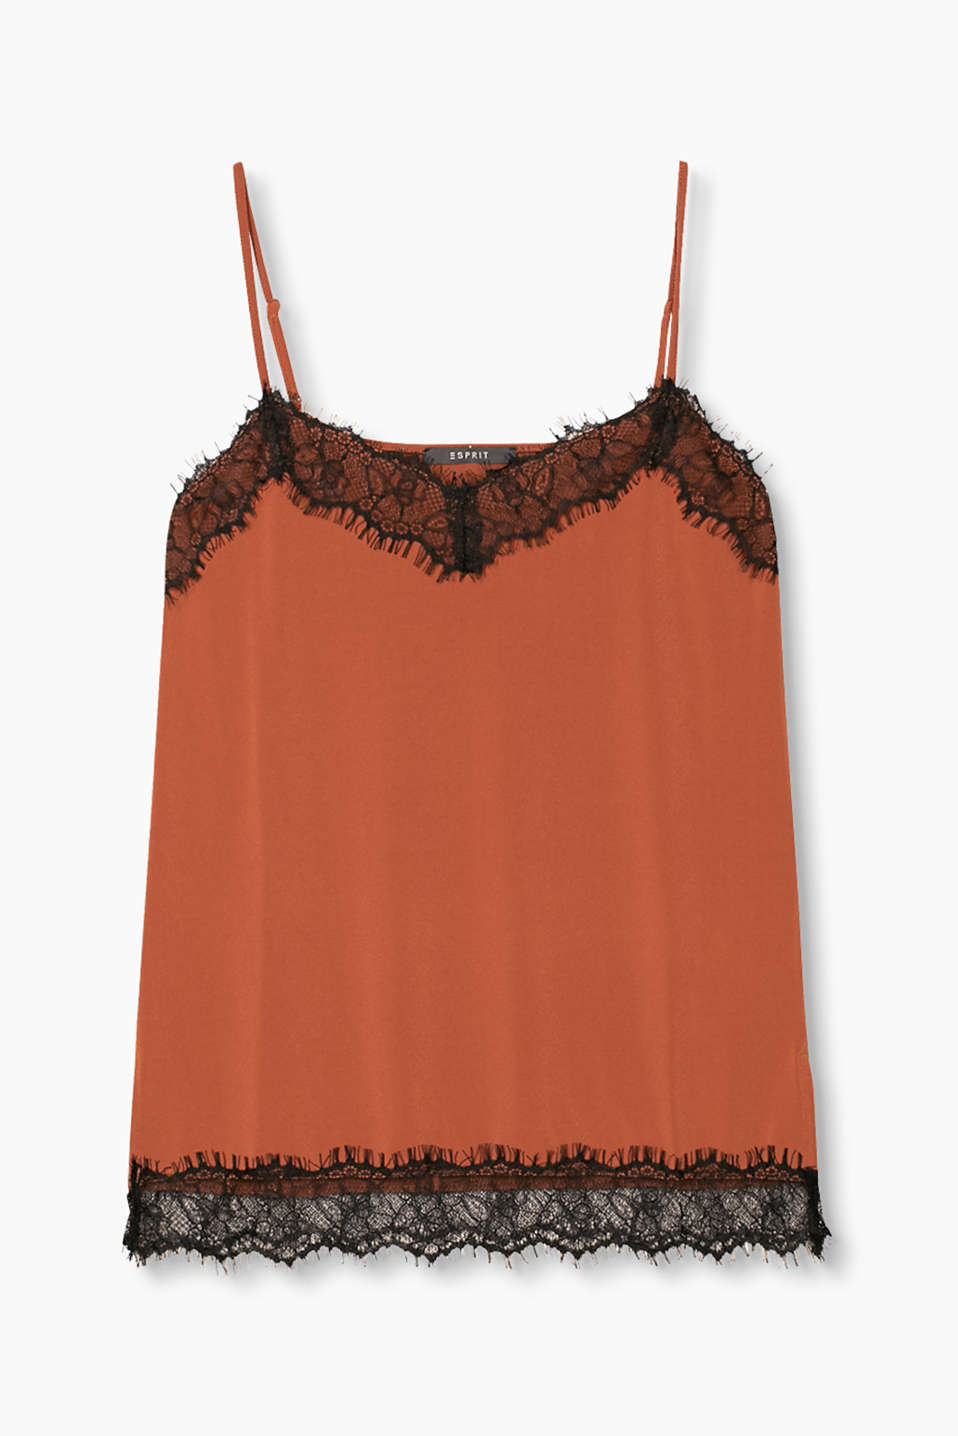 Spaghetti strap top in softly draped crêpe with a percentage of stretch, enhanced with lace